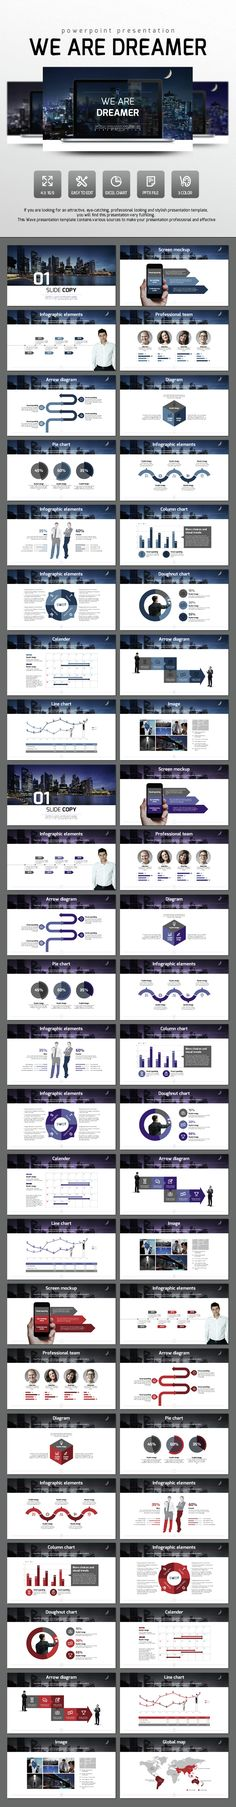 We Are Dreamer - PowerPoint Presentation Template #slides Download here…